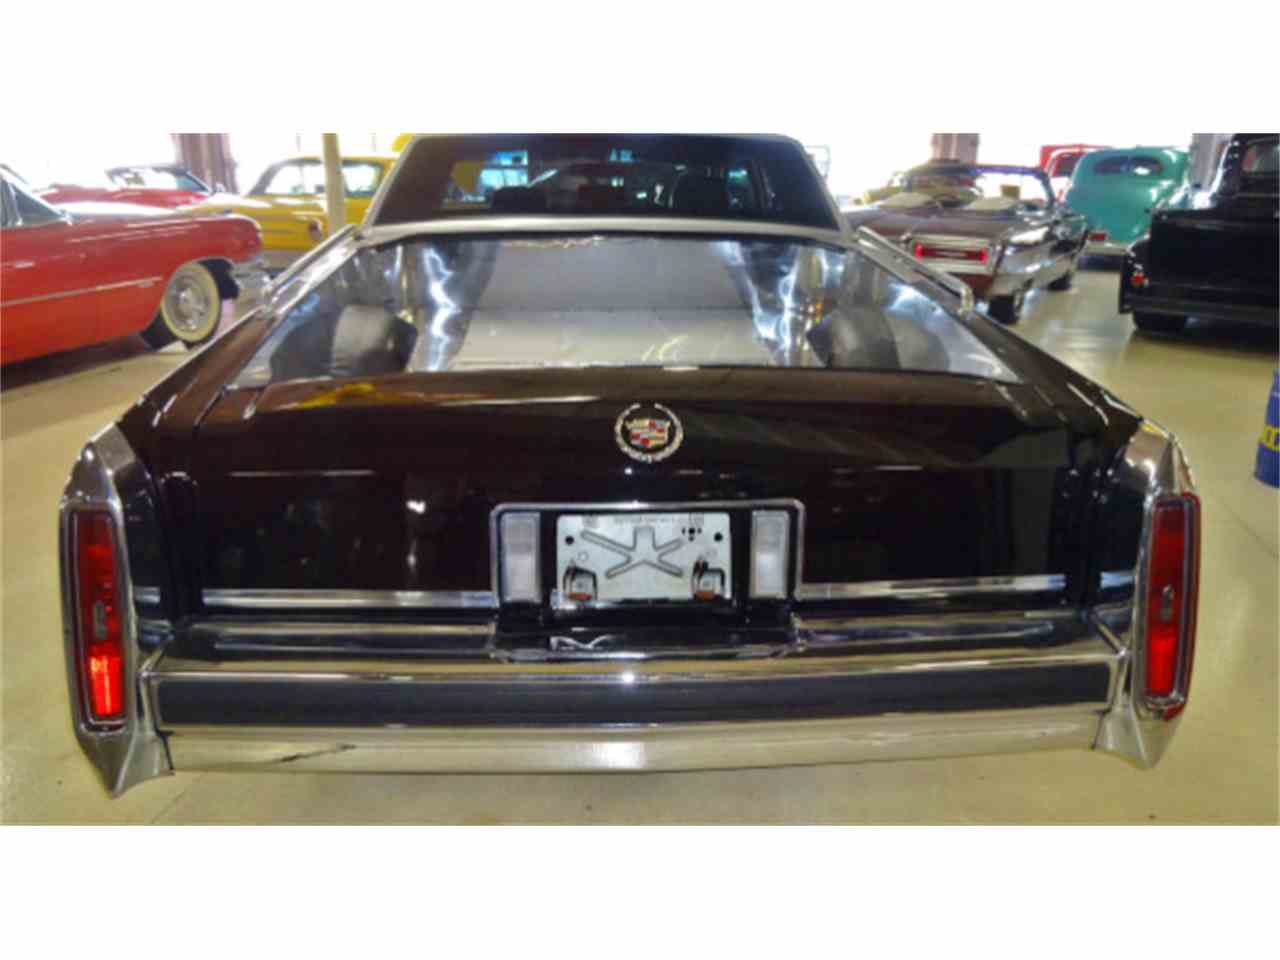 Large Picture of '81 Cadillac Fleetwood Brougham - $11,995.00 Offered by Cruisin Classics - JQKH